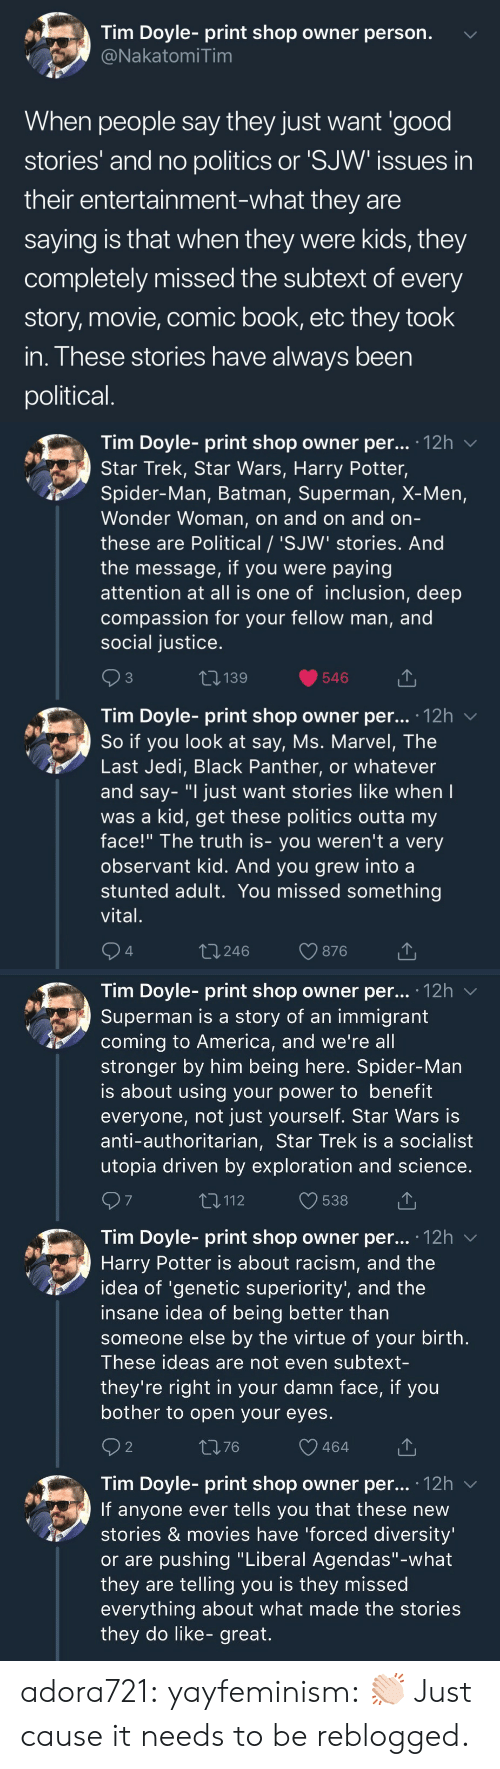 "Black Panther: Tim Doyle- print shop owner person.  NakatomiTim  When people say they just want 'good  stories' and no politics or 'SJW issues in  their entertainment-what they are  saying is that when they were kids, they  completely missed the subtext of every  story, movie, comic book, etc they took  in. These stories have always been  political   Tim Doyle- print shop owner per... 12h v  Star Trek, Star Wars, Harry Potter,  Spider-Man, Batman, Superman, X-Men,  Wonder Woman, on and on and orn  these are Political / 'SJW' stories. And  the message, if you were paying  attention at all is one of inclusion, deep  compassion for your fellow man, and  social justice  3  139  546  Tim Dovle-print shop owner per... 12h  So if you look at say, Ms. Marvel, The  Last Jedi, Black Panther, or whatever  and say- ""I just want stories like when  was a kid, get these politics outta my  face!"" The truth is- you weren't a very  observant kid. And you grew into a  stunted adult. You missed something  vital  4  t 246  876   Tim Doyle- print shop owner per... '12h v  Superman is a story of an immigrant  coming to America, and we're all  stronger by him being here. Spider-Man  is about using your power to benefit  everyone, not just yourself. Star Wars is  anti-authoritarian, Star Trek is a socialist  utopia driven by exploration and science  7  T,112  538  Tim Doyle- print shop owner per... .12h  Harry Potter is about racism, and the  idea of 'genetic superiority', and the  insane idea of being better than  someone else by the virtue of your birth  These ideas are not even subtext-  they're right in your damn face, if you  bother to open your eyes  2  1376  464  Tim Doyle- print shop owner per... 12h v  If anyone ever tells you that these new  stories & movies have 'forced diversity  or are pushing ""Liberal Agendas""-what  they are telling you is they missed  everything about what made the stories  they do like- great. adora721: yayfeminism: 👏🏻 Just cause it needs to be reblogged."